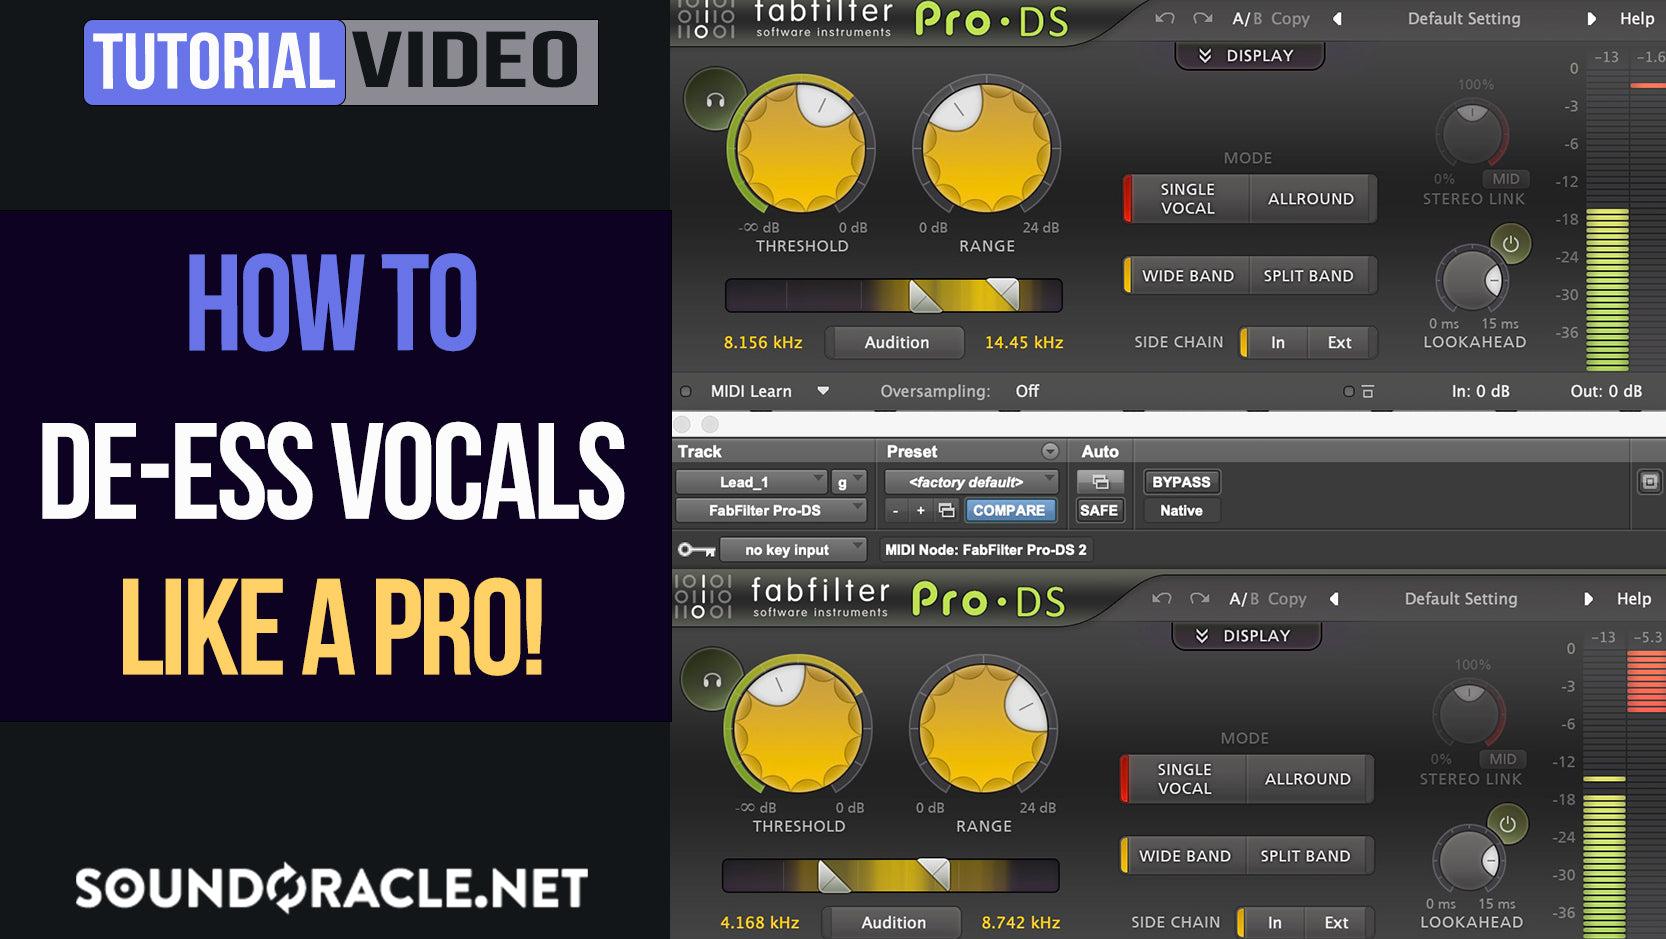 How To De-Ess Vocals Like A Pro!